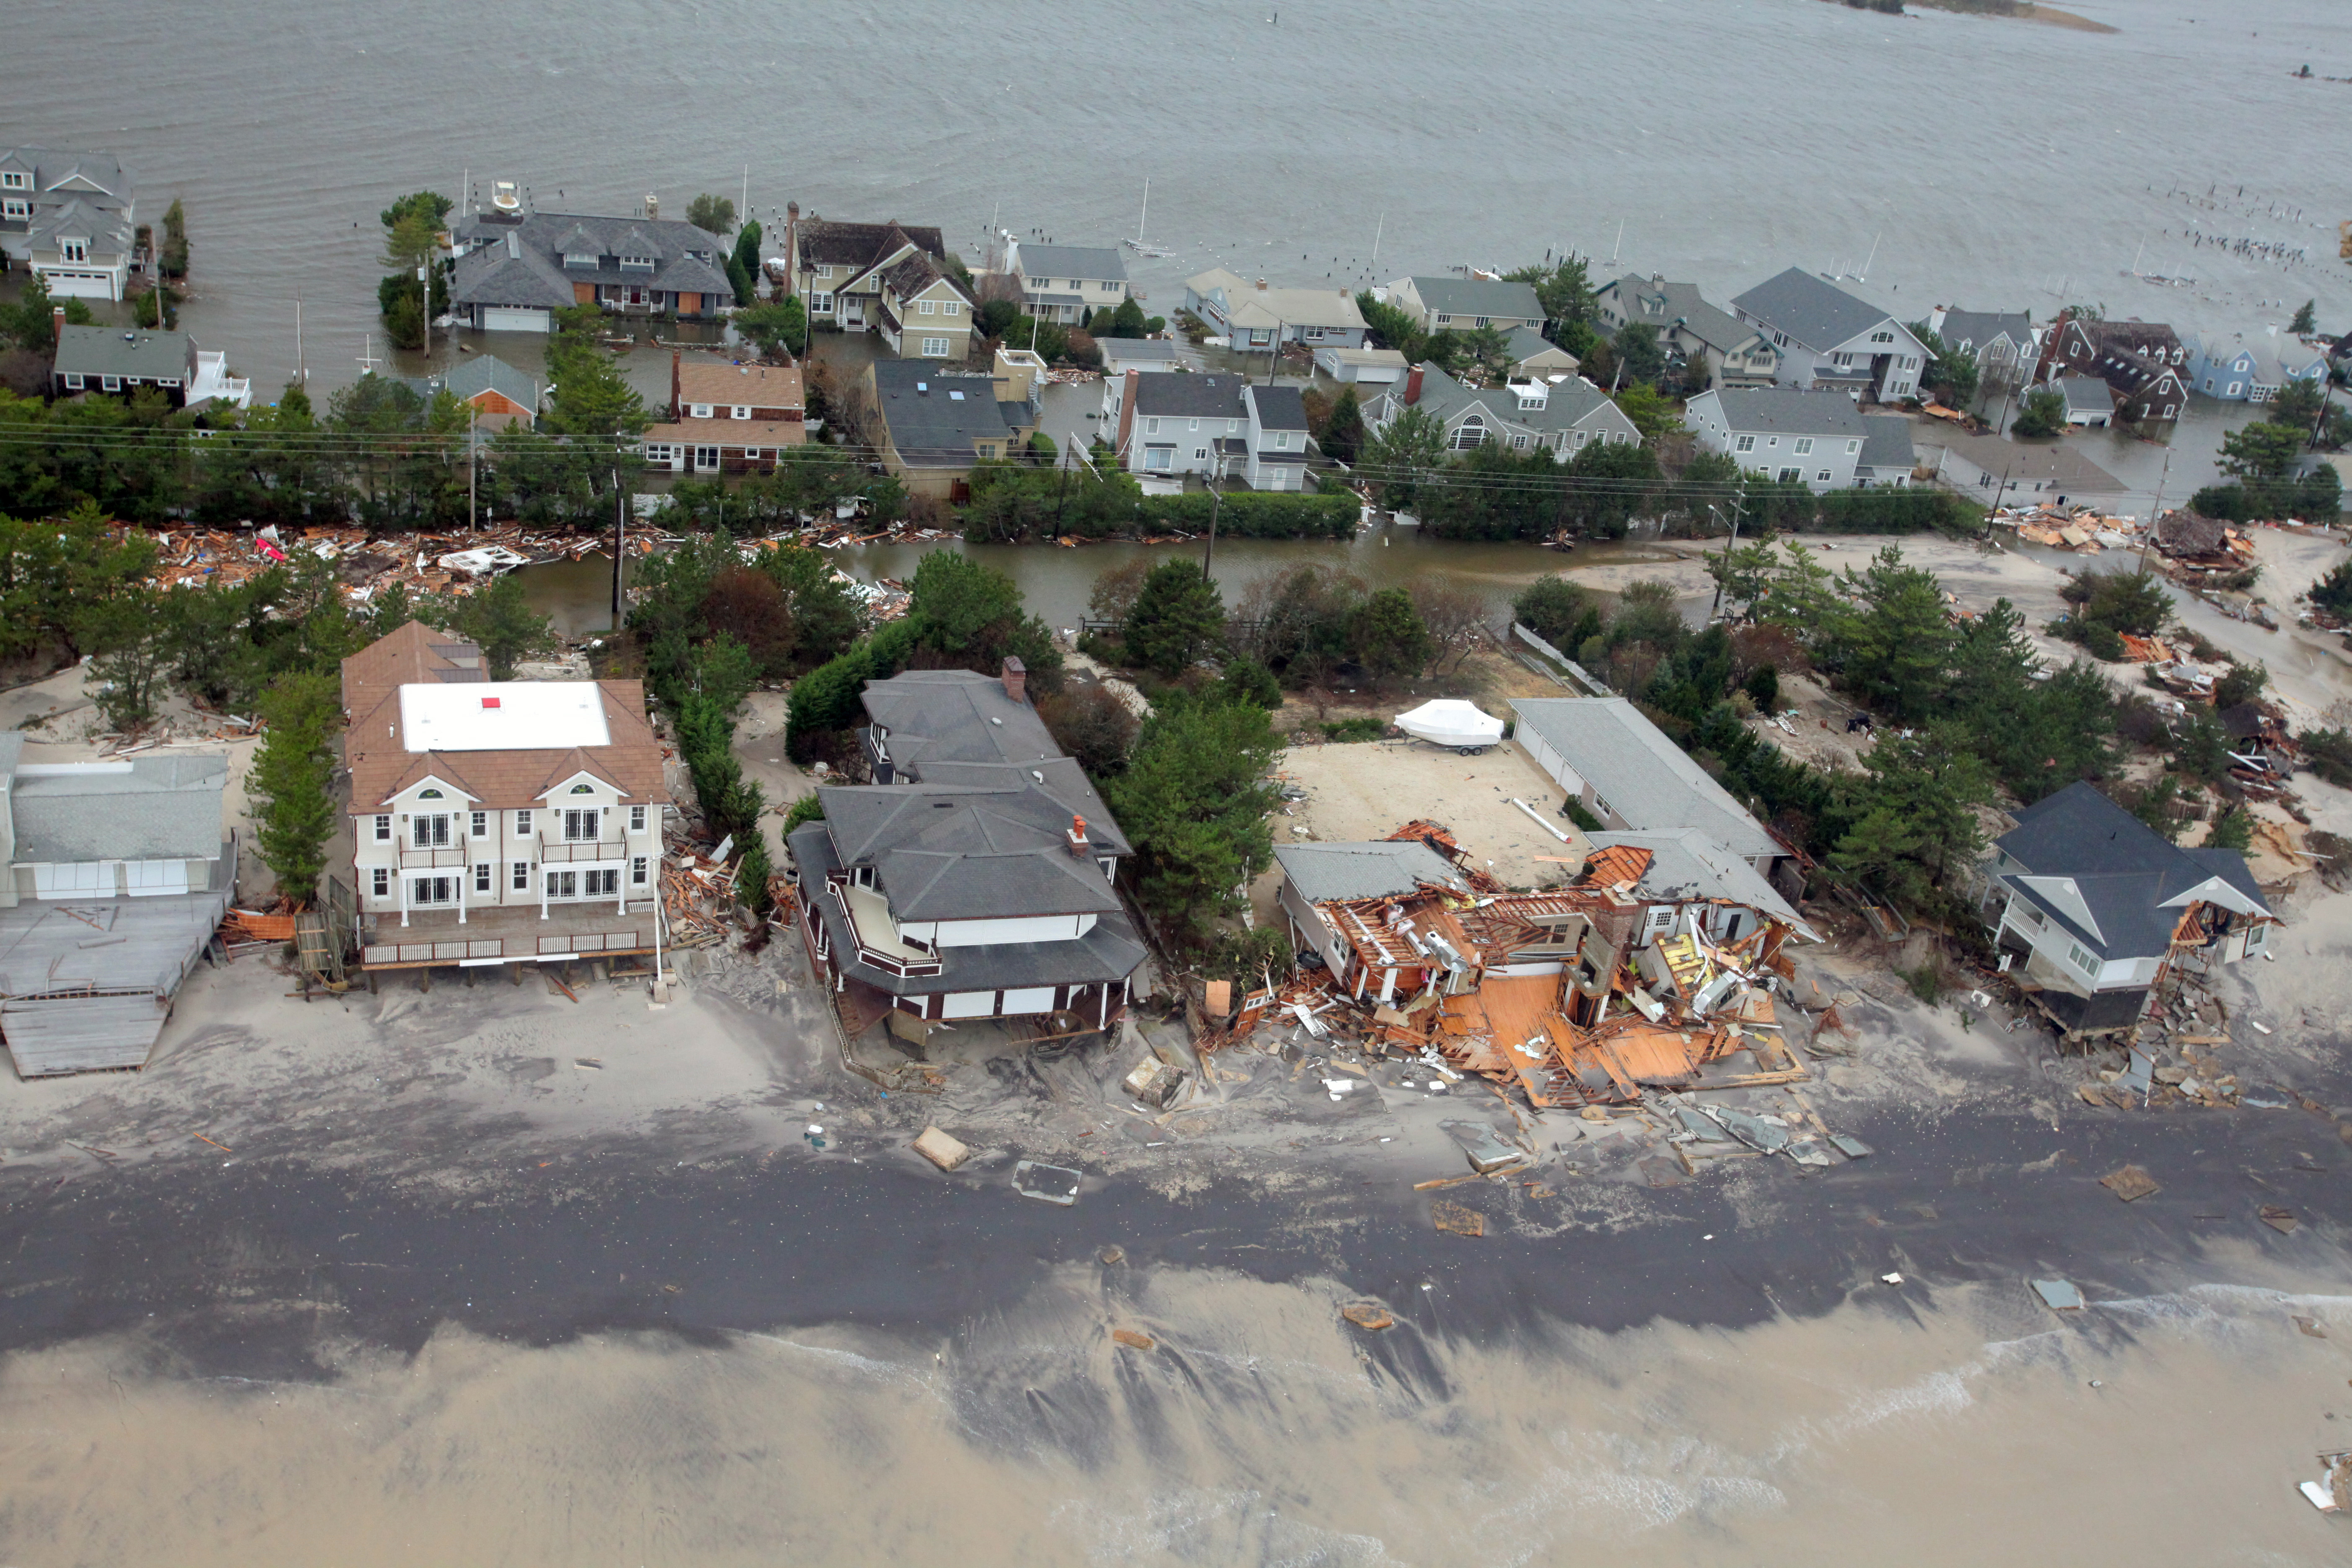 scientists attribute devastation by hurricane sandy Hurricane sandy was the deadliest and most destructive hurricane of the 2012  atlantic hurricane season inflicting nearly $70 billion (2012 usd) in damage, it  was the second-costliest hurricane on  although noaa meteorologist martin  hoerling attributes sandy to little more than the coincidental alignment of a  tropical.